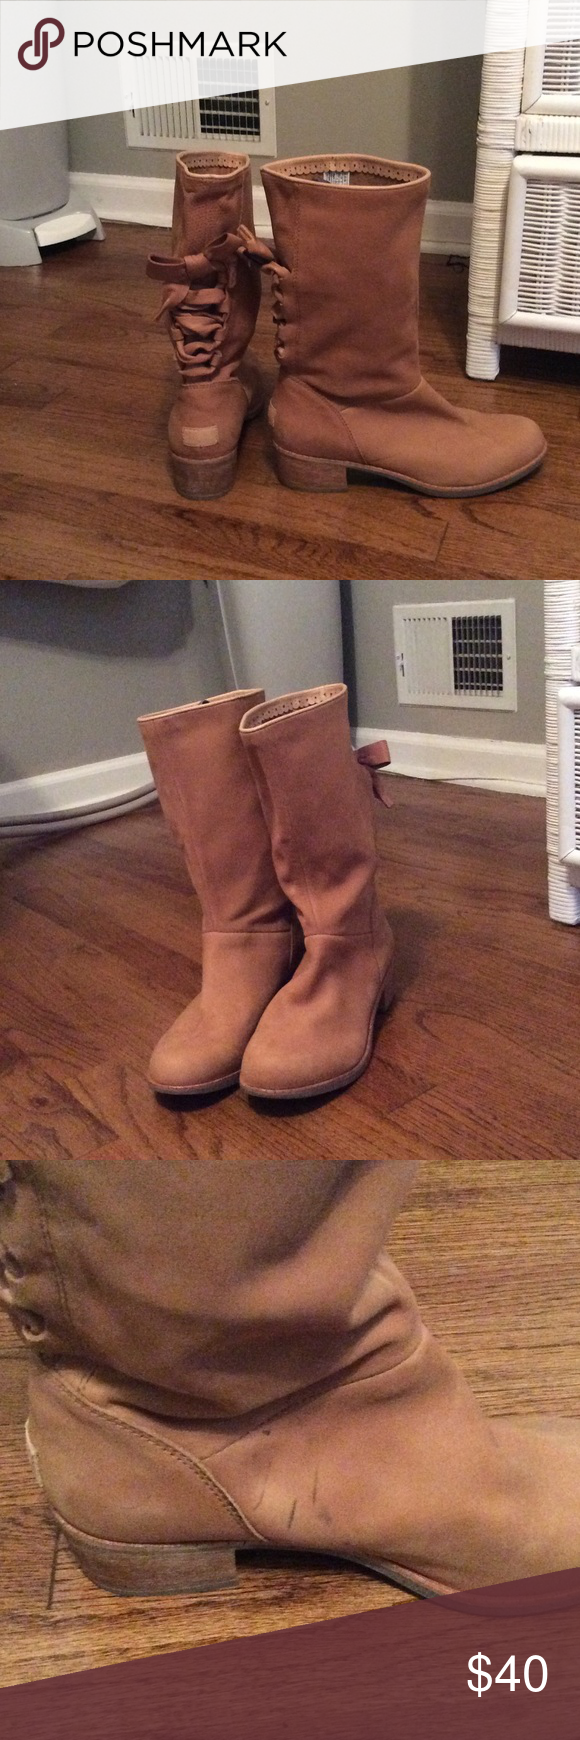 UGG tie boots Used pair of UGG boots. They tie in the back and are made out of leather and sheepskin. ***Please note the black markings on the inside of the boots. Pictures show this wear. Other than markings they're in great condition. UGG Shoes